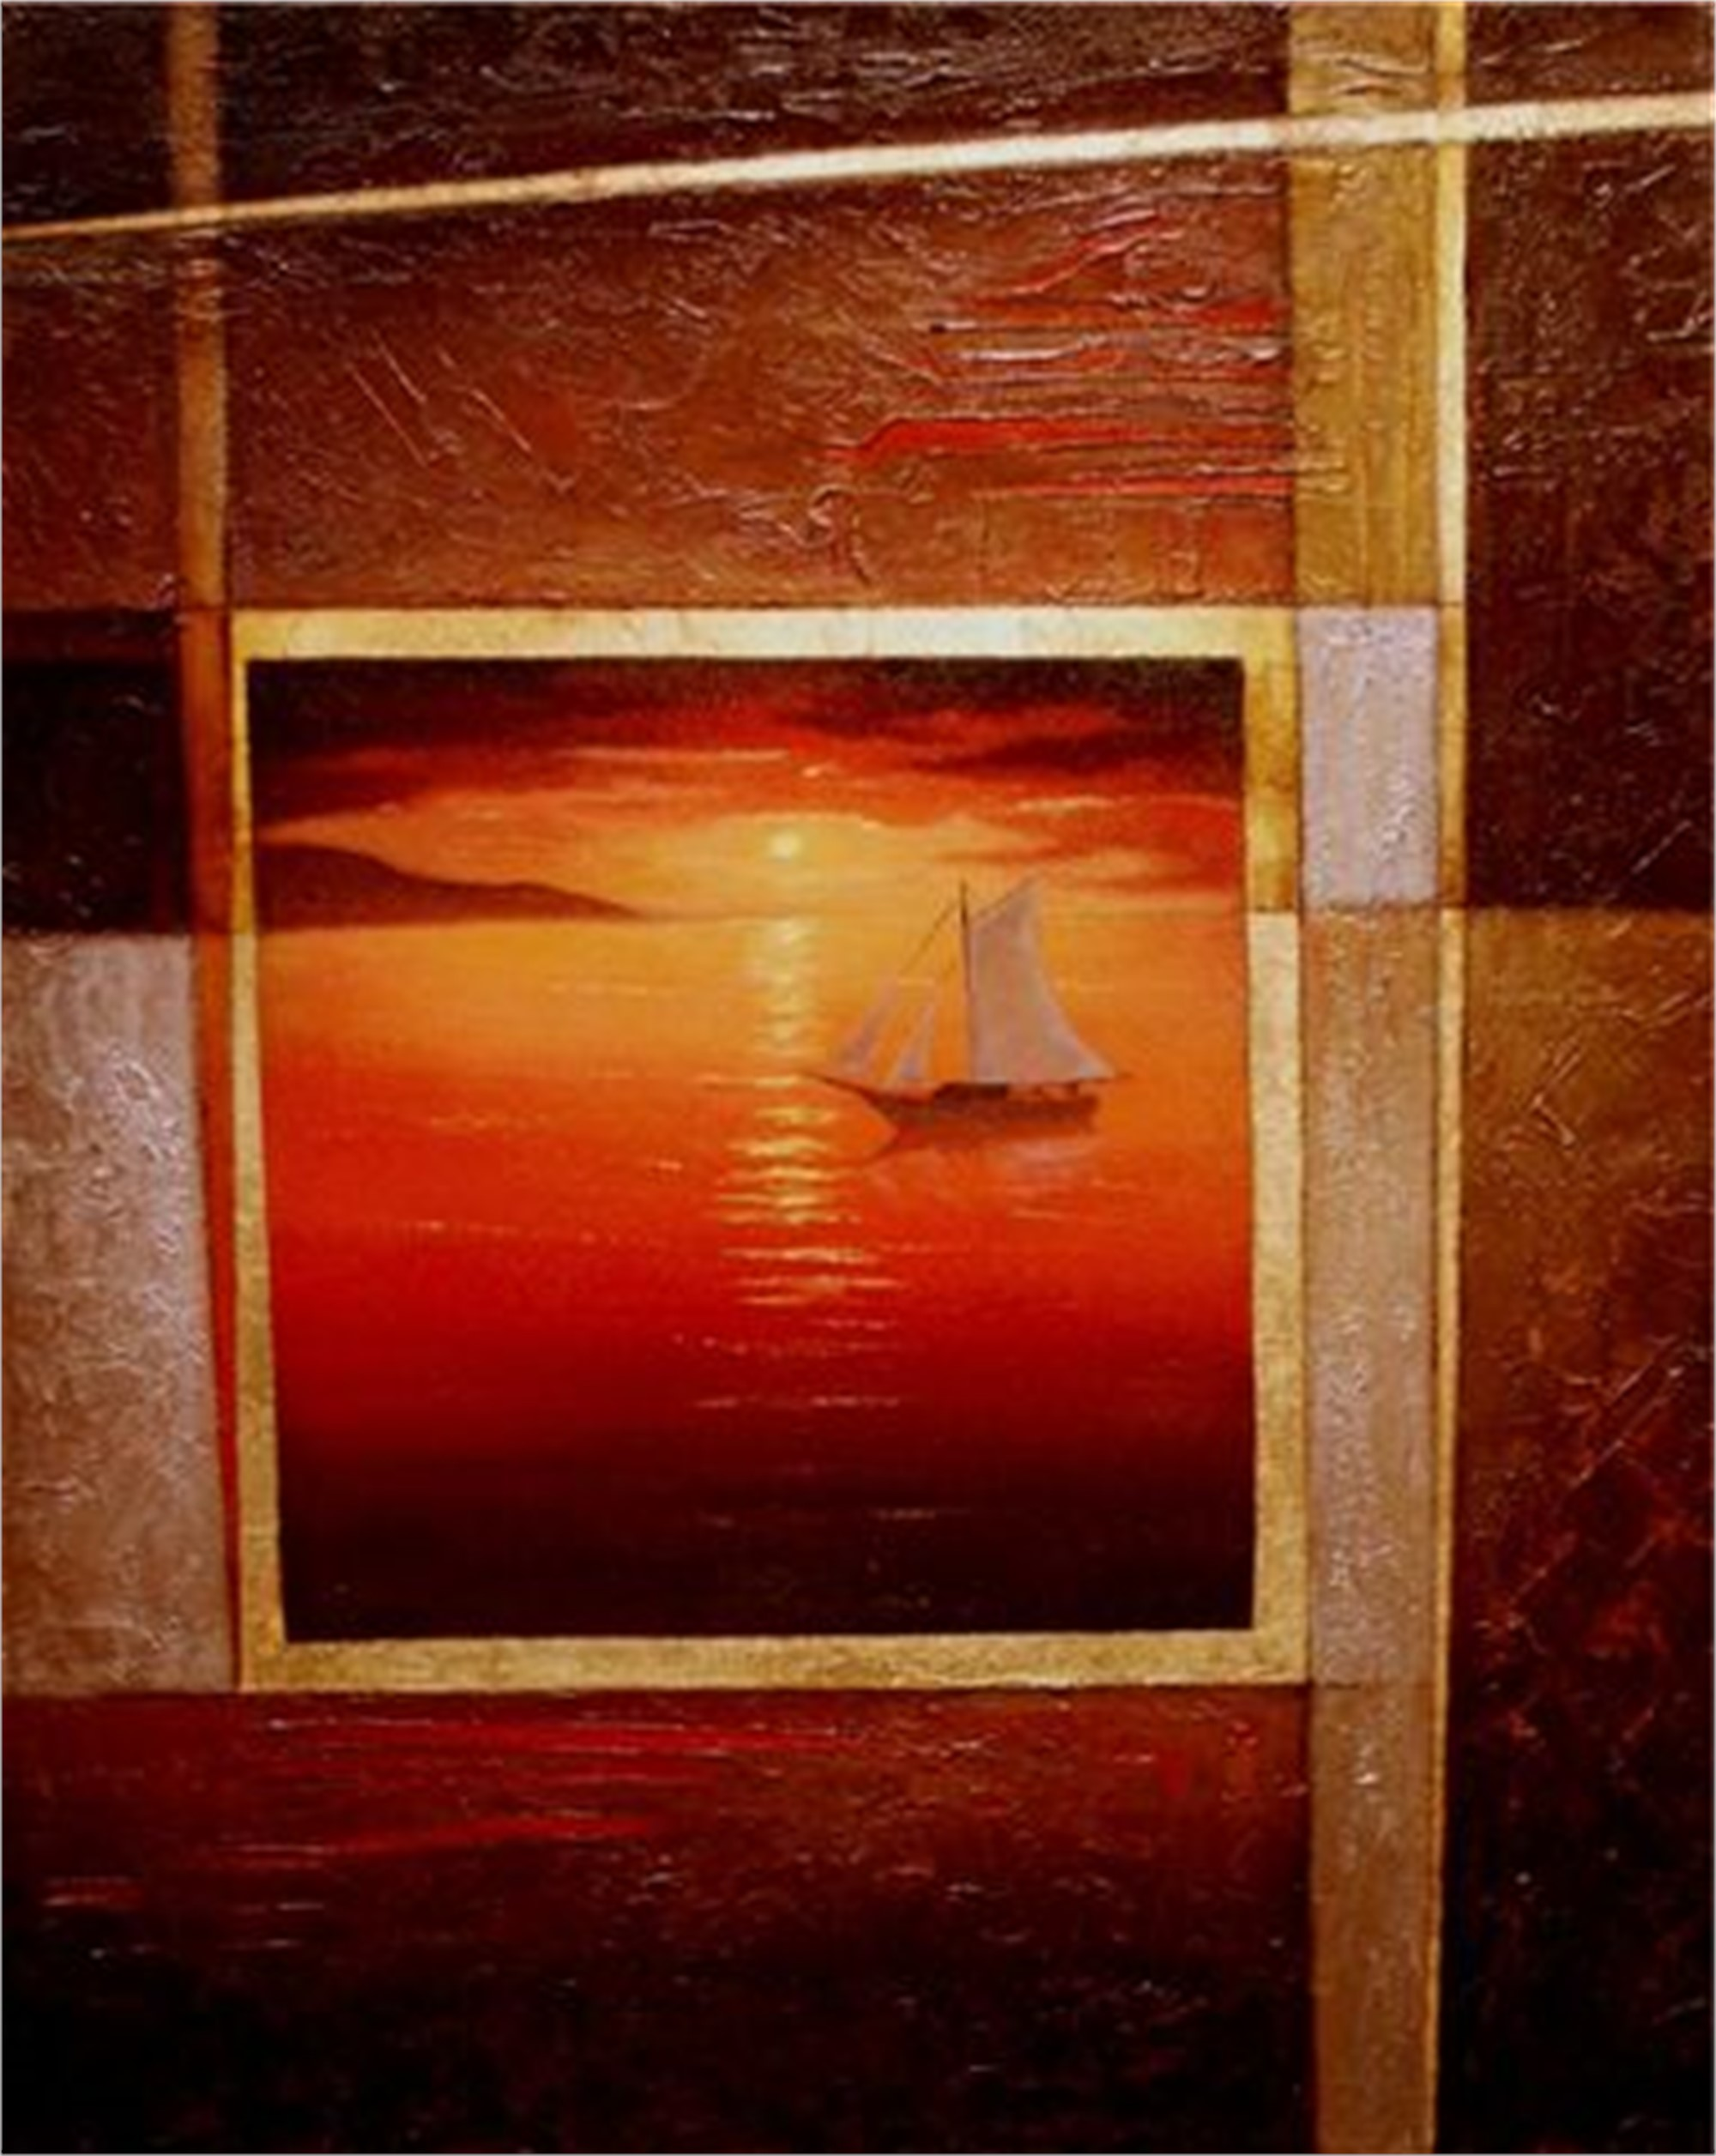 Sailor's Delight by Marlys Mallét & Michael Redhawk